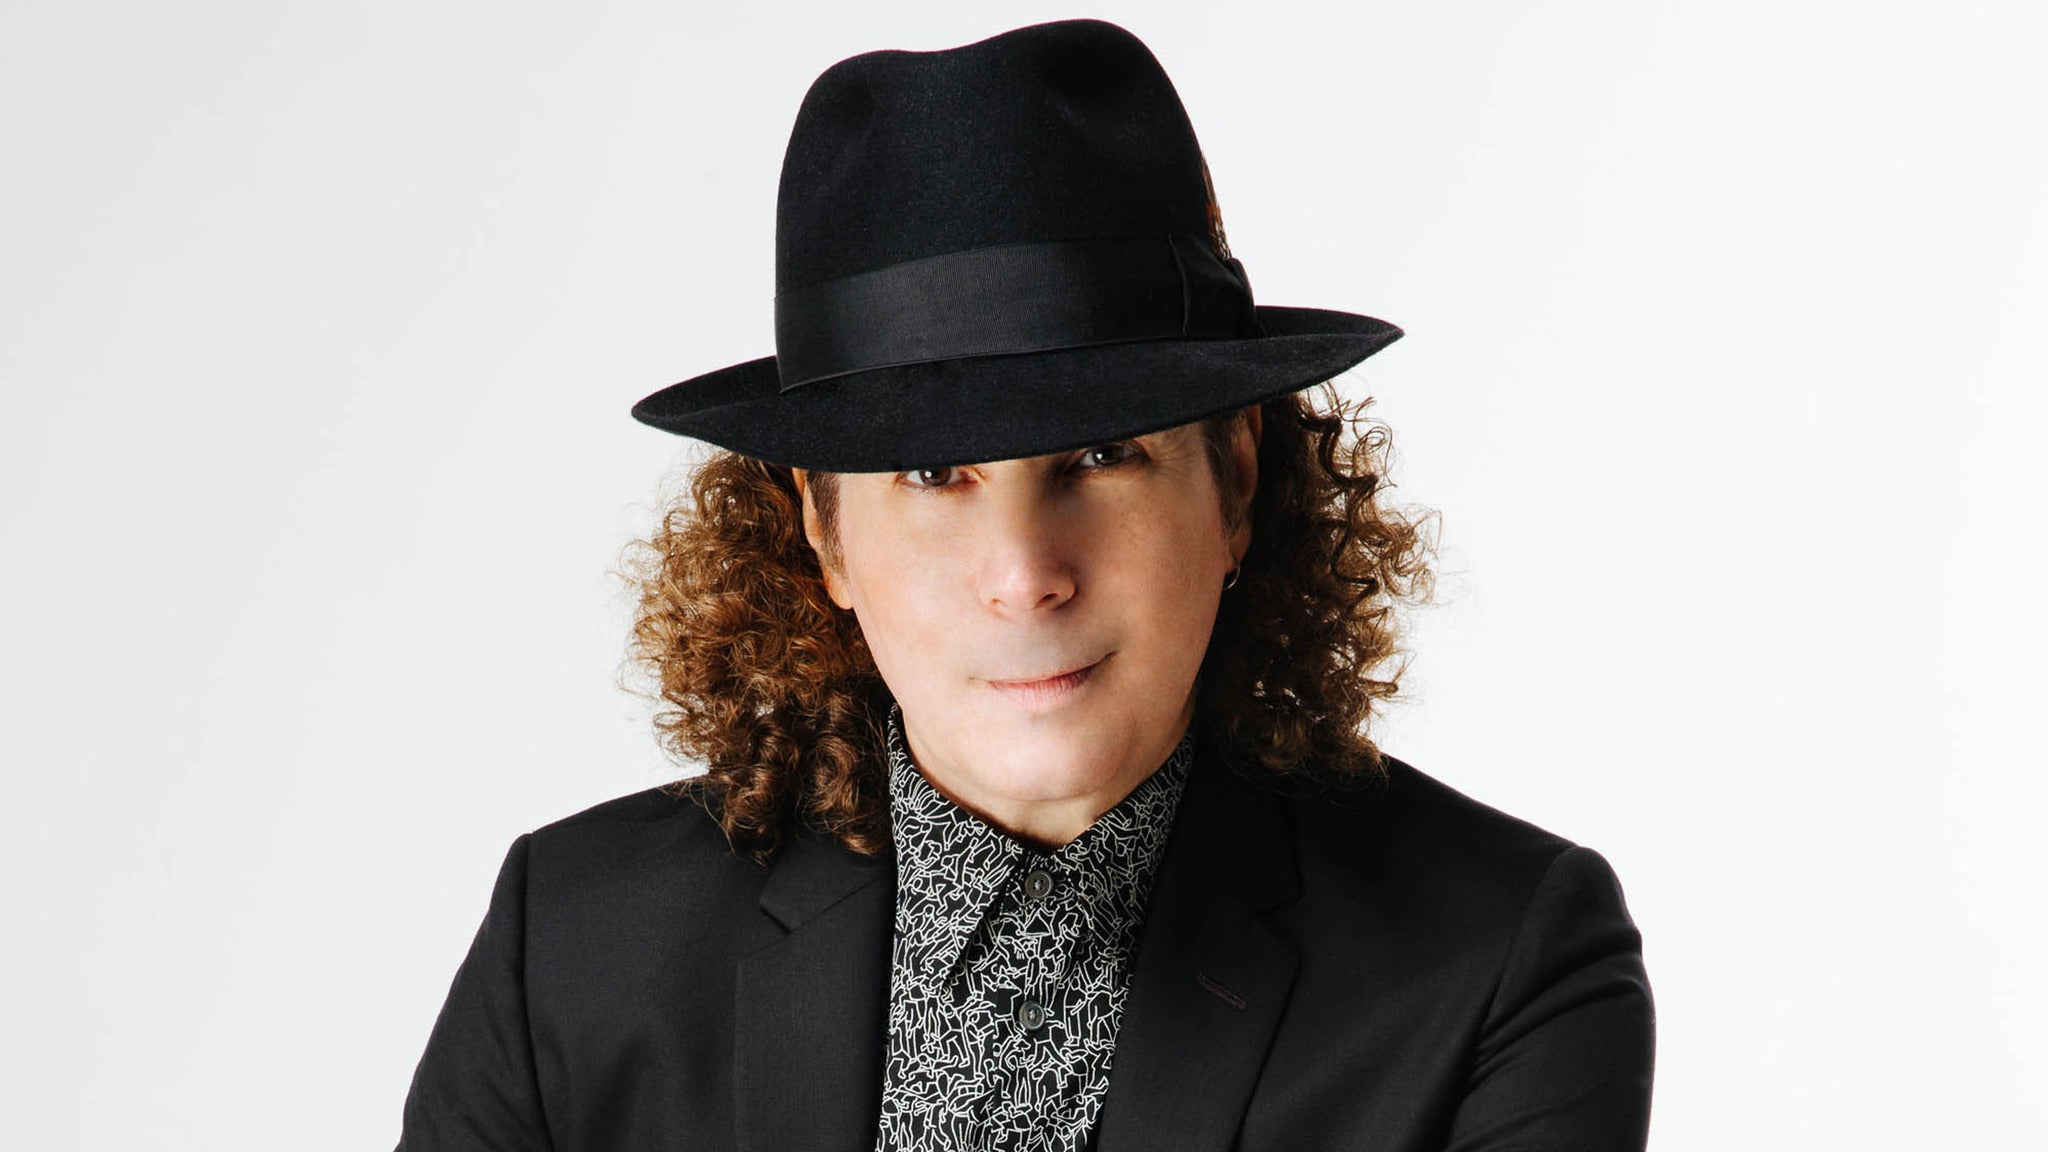 Boney James: Solid Tour 2021 at Old National Centre